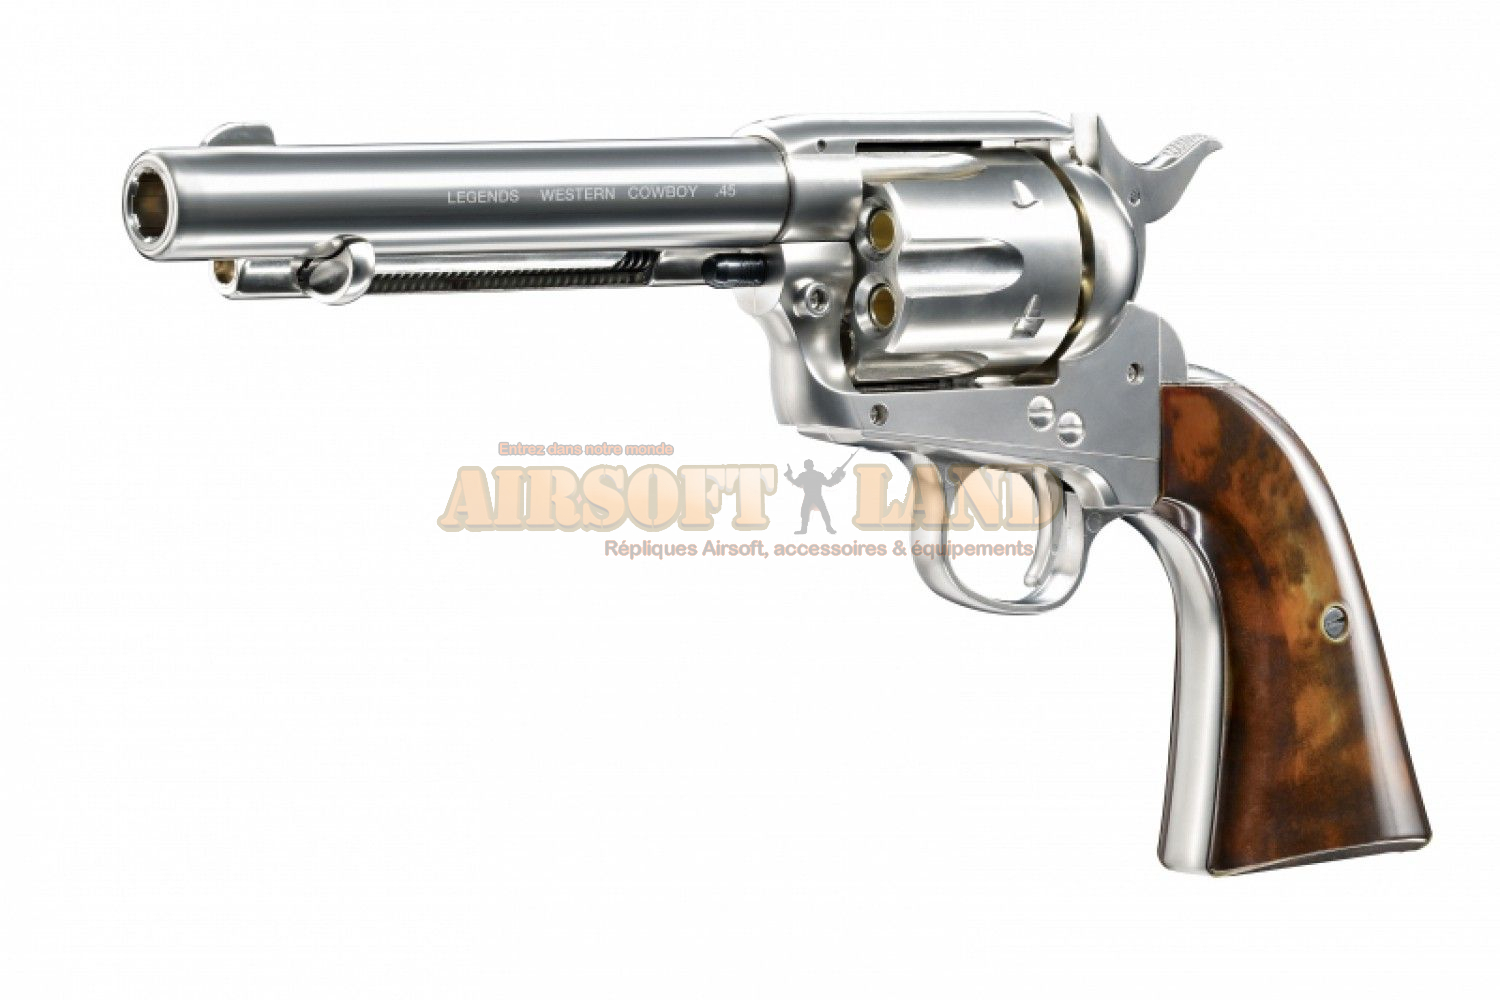 Revolver Legends type Colt single action army co²